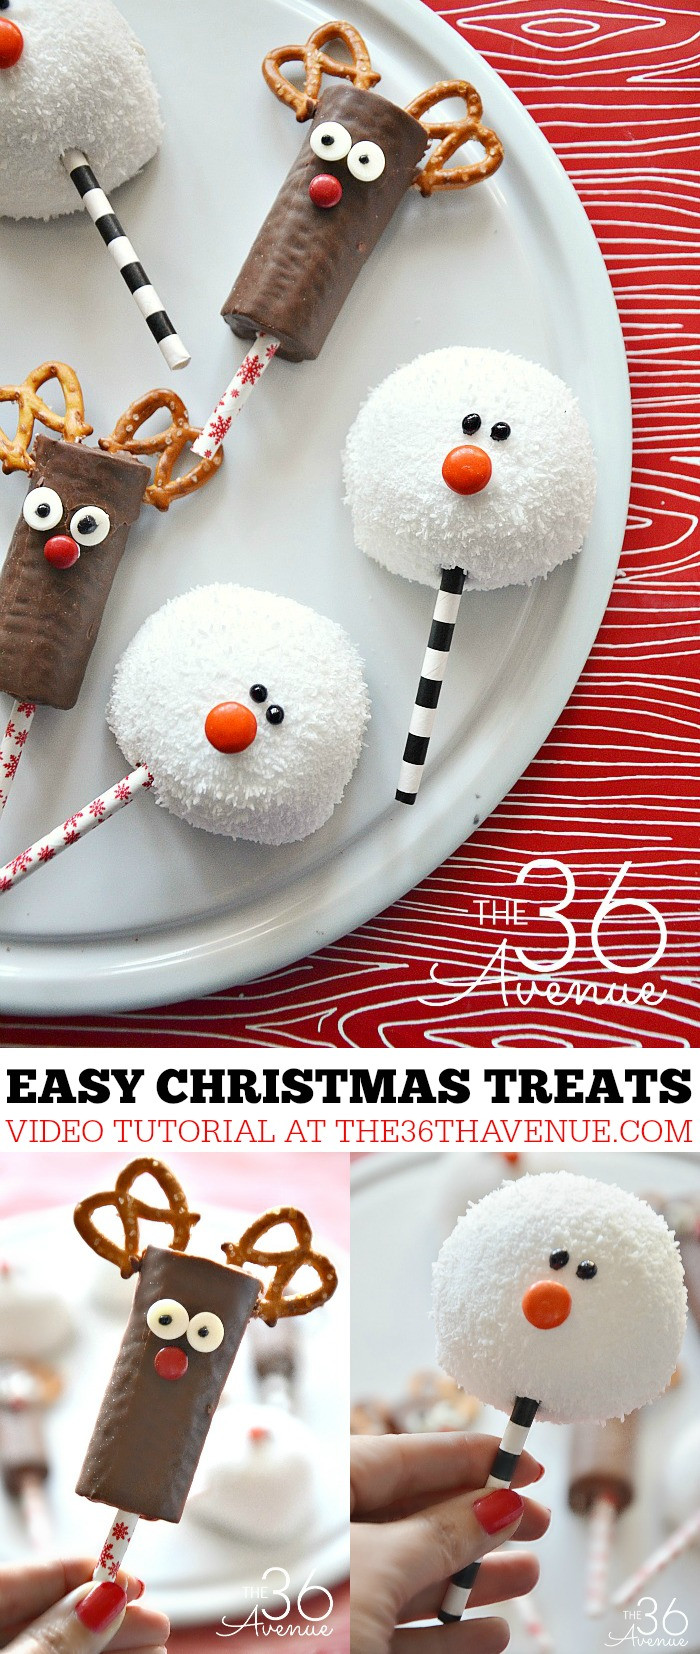 Easy To Make Christmas Desserts  Christmas Treats Reindeer and Snowman The 36th AVENUE